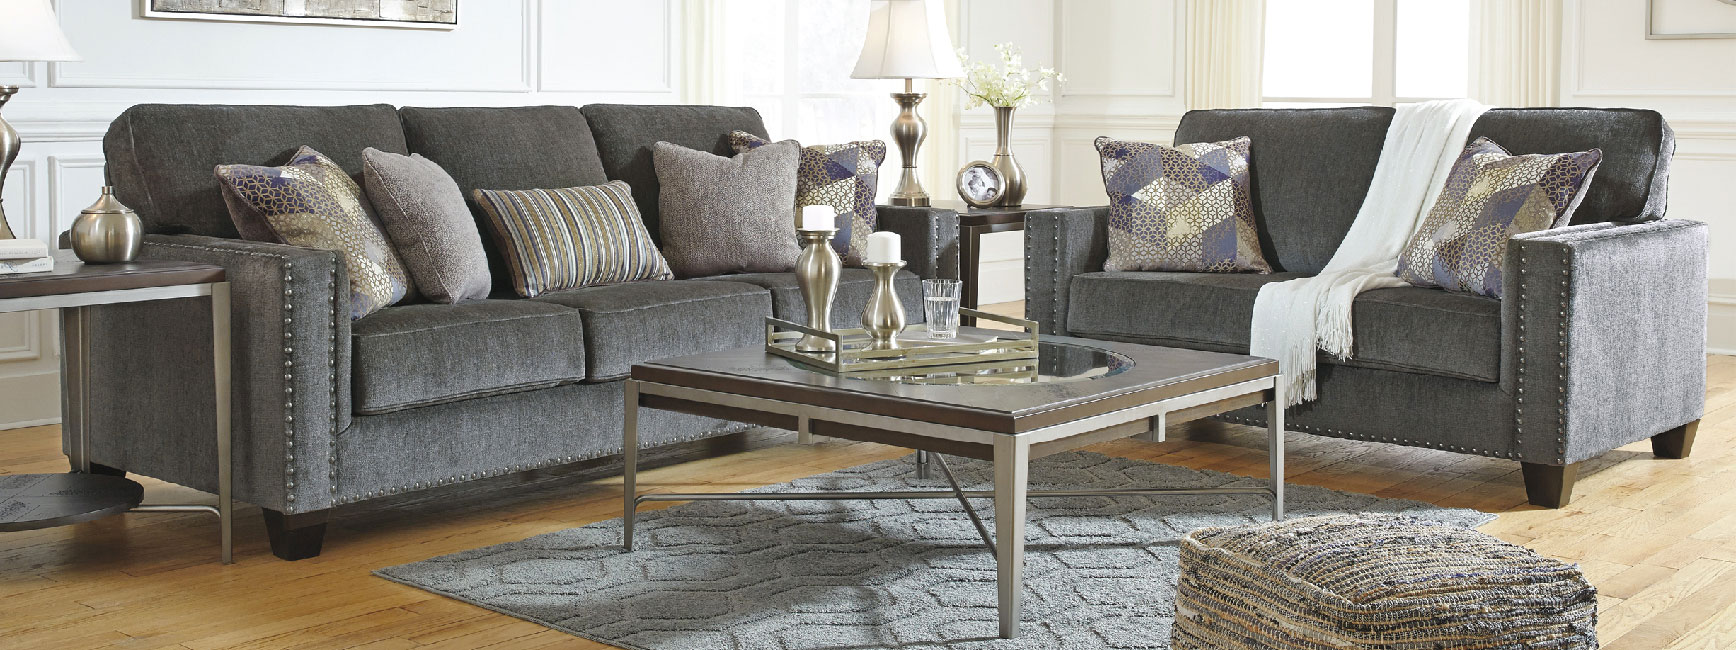 e7526d318ba Visit Our Home Furniture Store in Sacramento